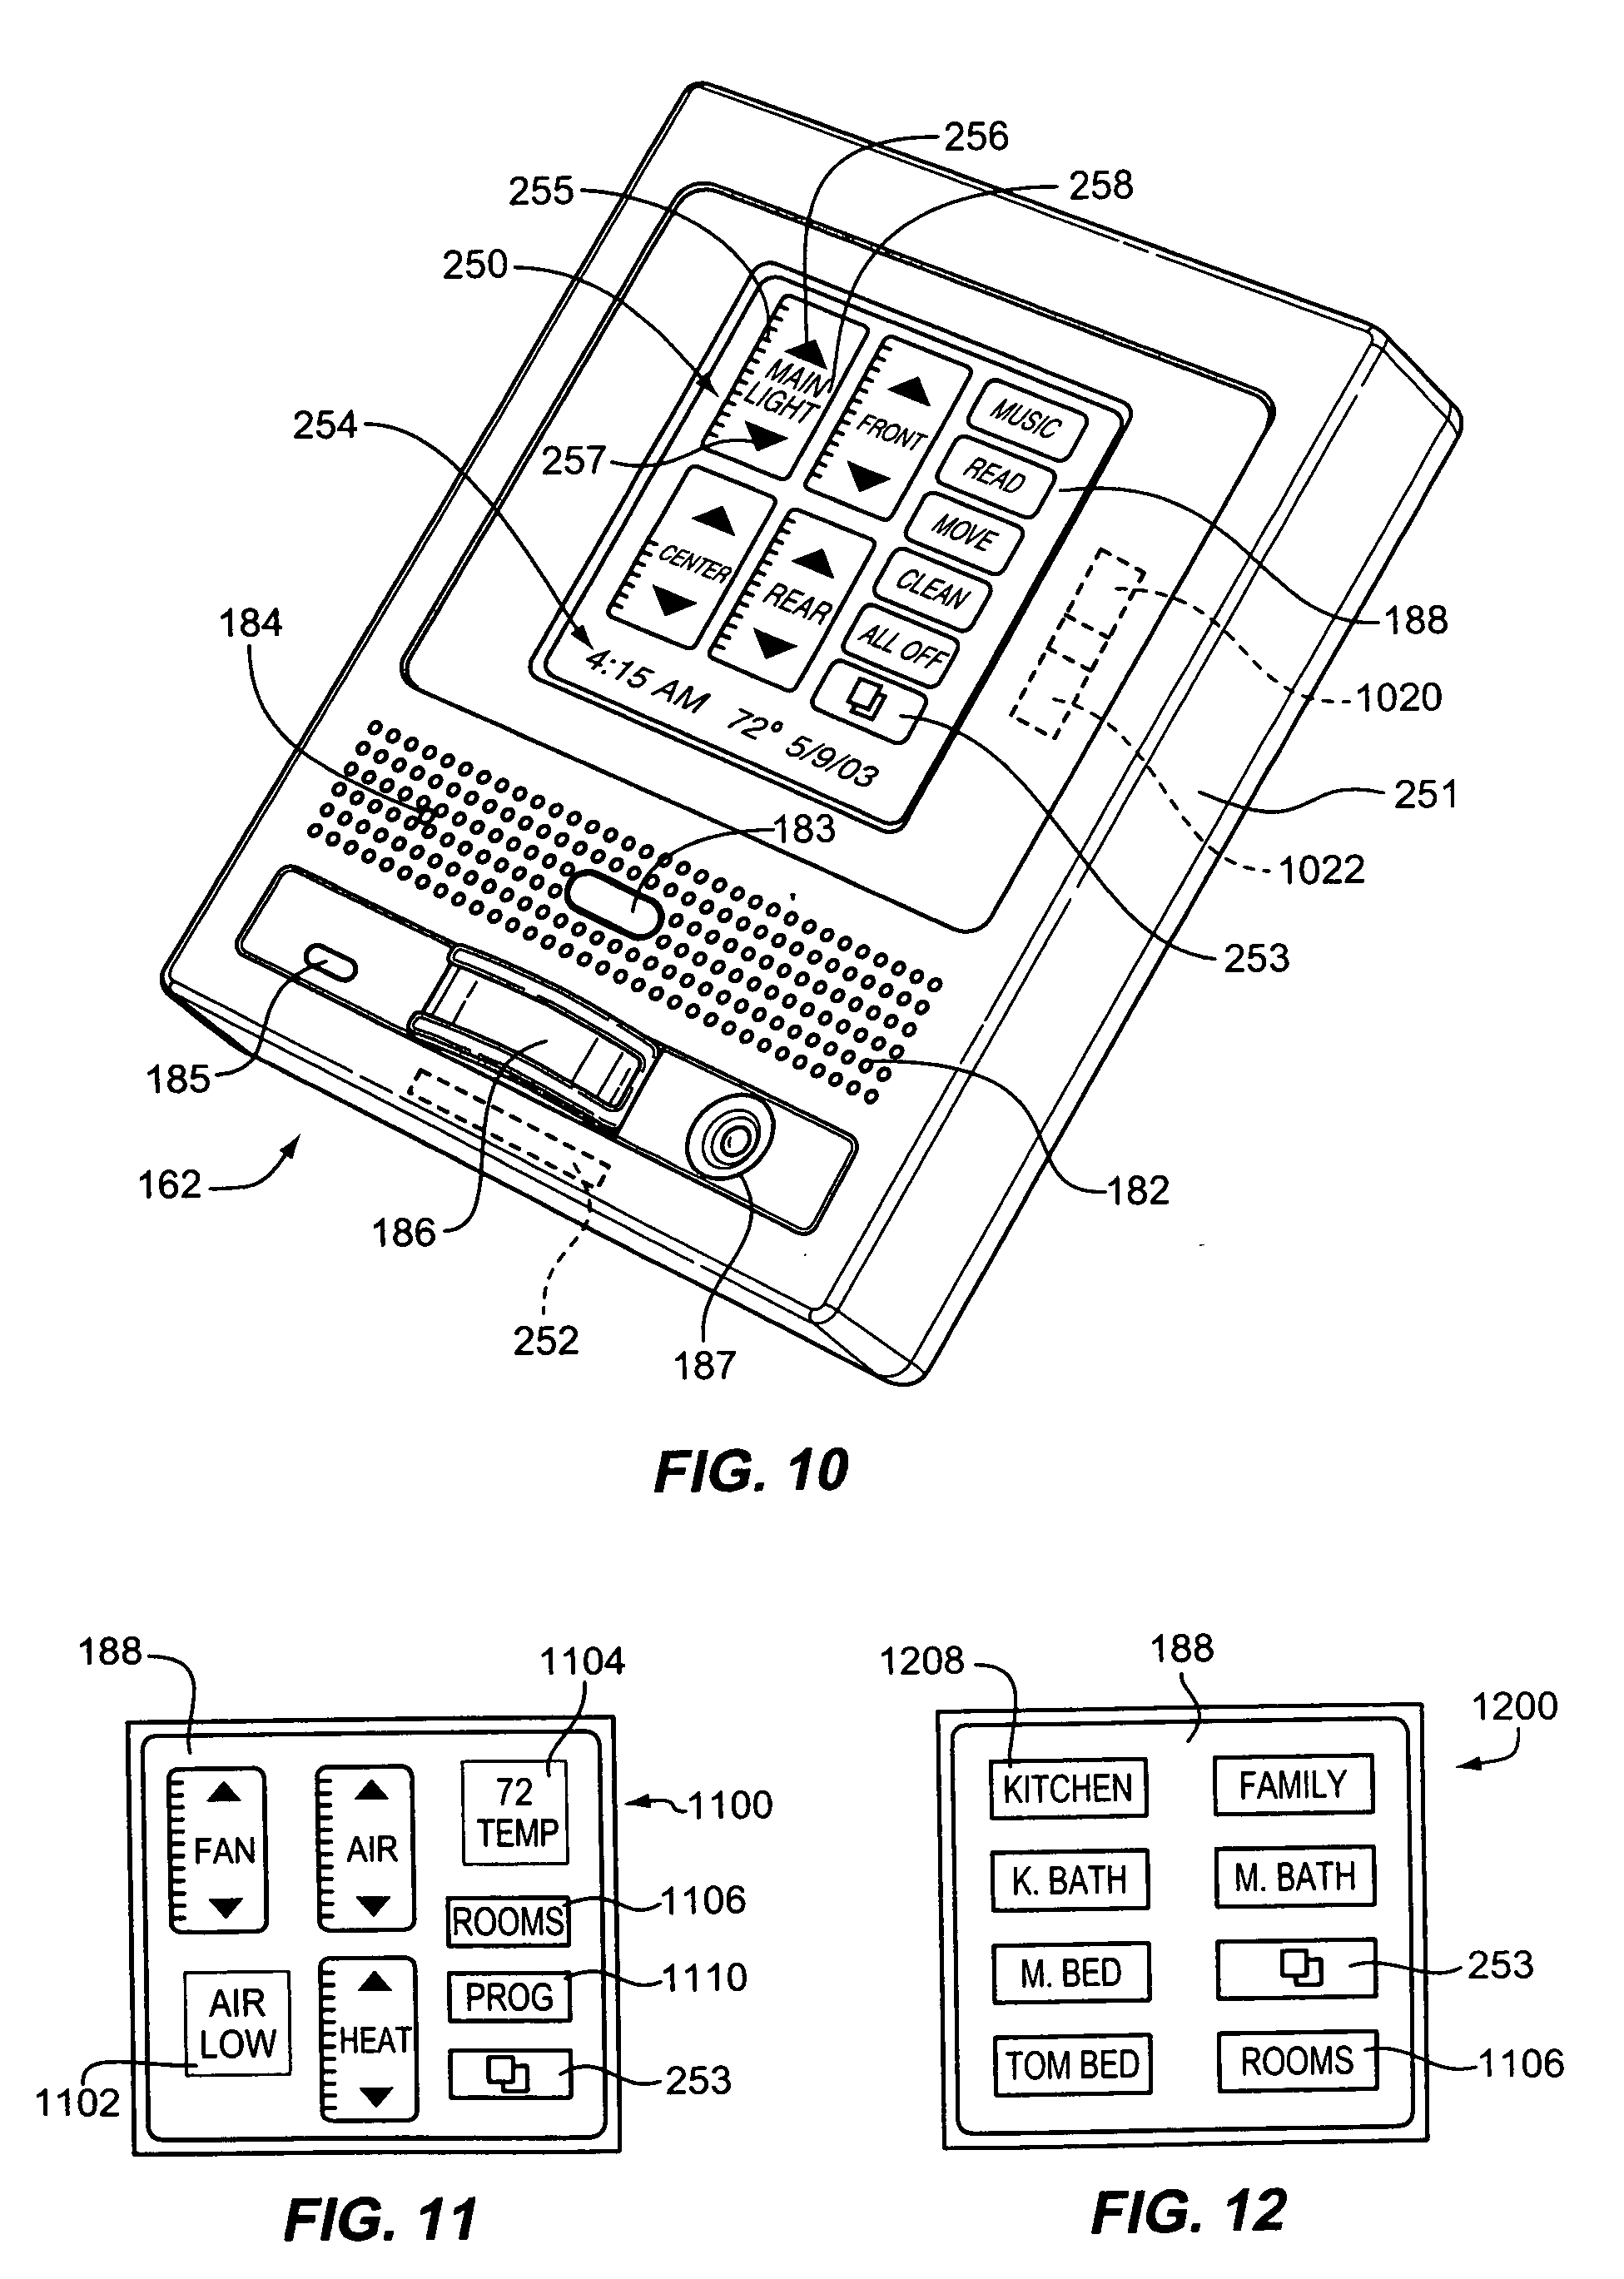 Patent Us 6967565 B2 Room Temperature Controller By Pic16f873 0 Petitions